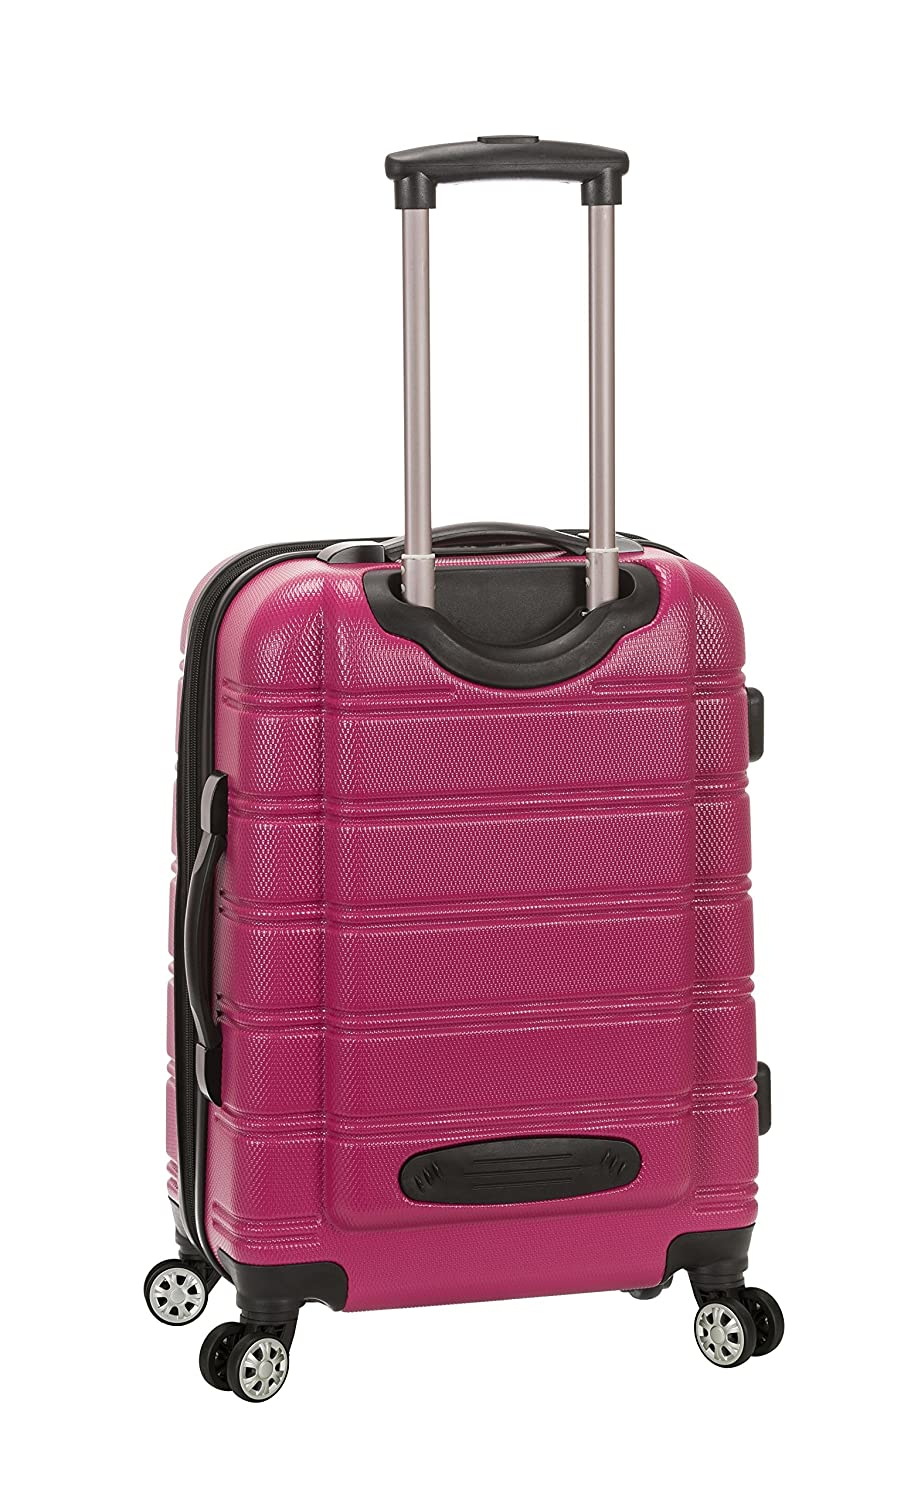 One Size Grey ROCKLAND Melbourne 20 Inch Expandable ABS Carry On Luggage